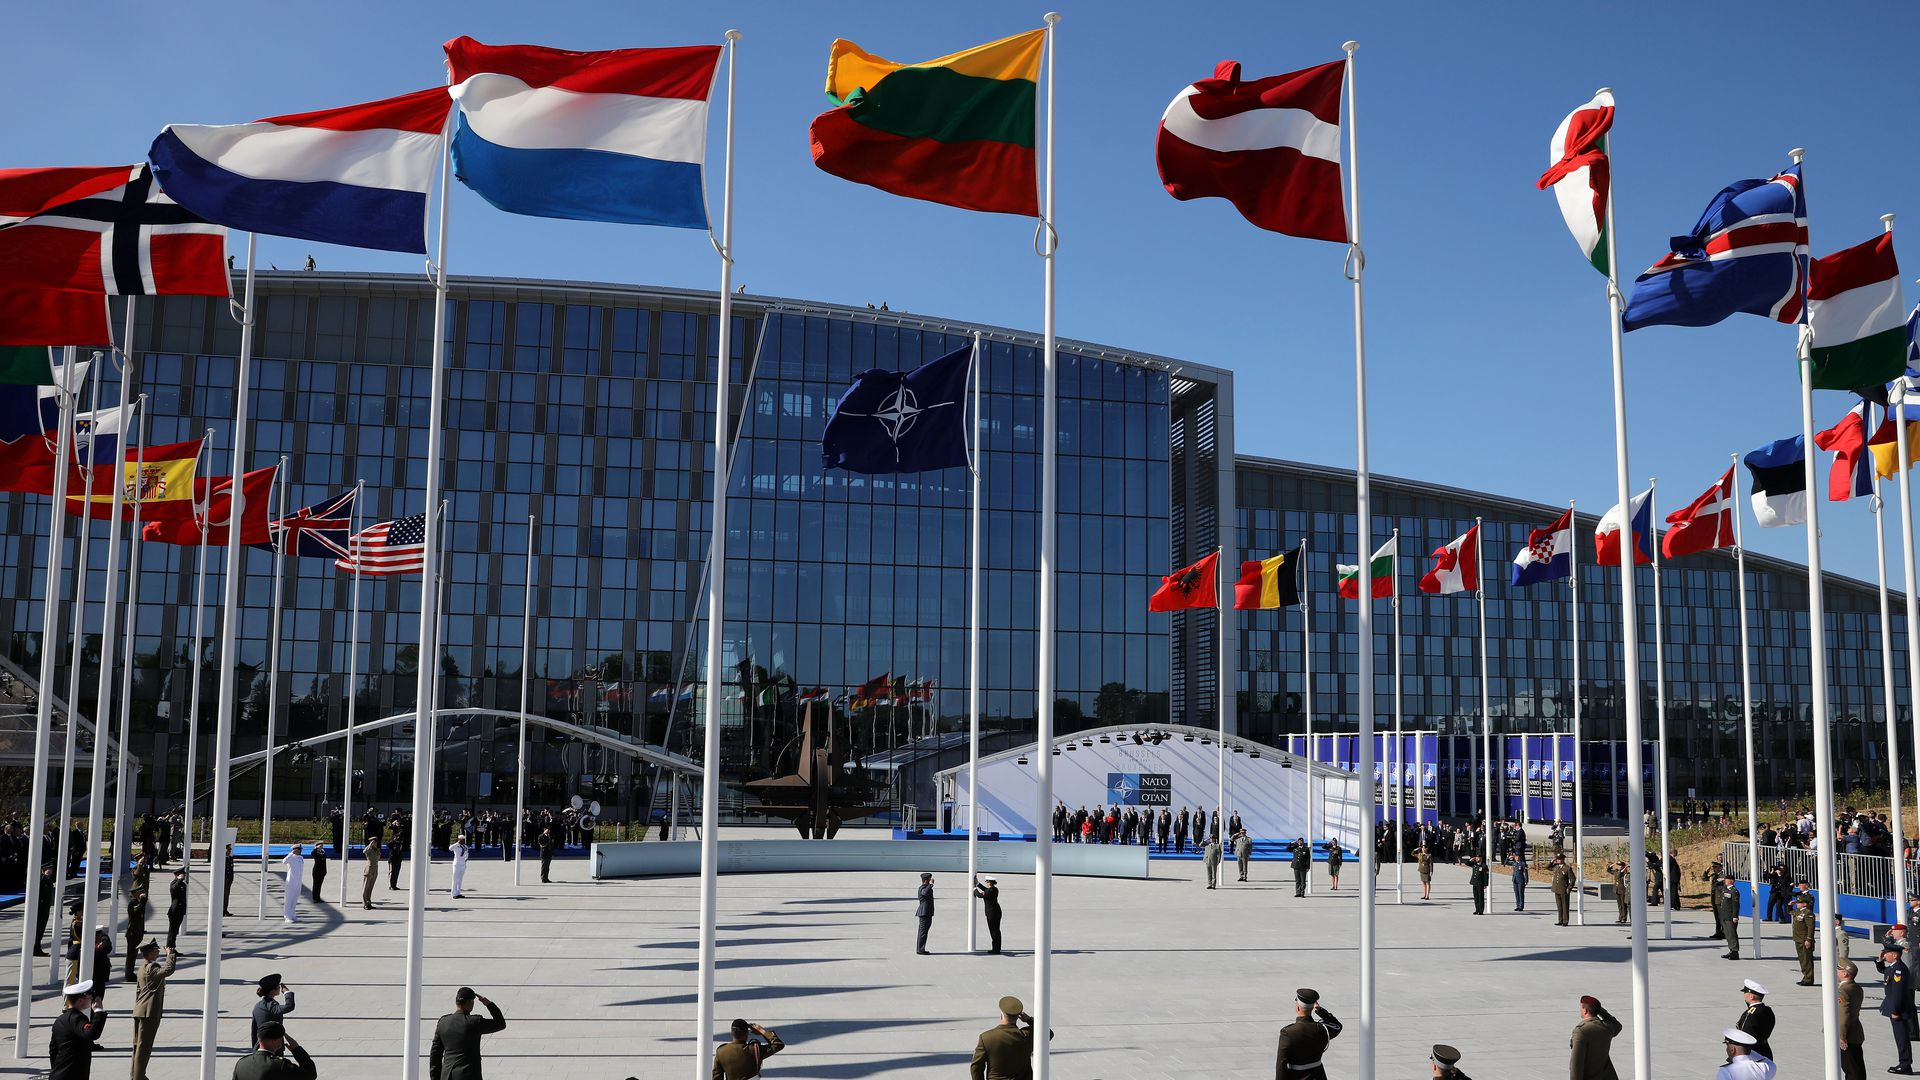 NATO headquarters, with circle of flagpoles and soldiers at attention